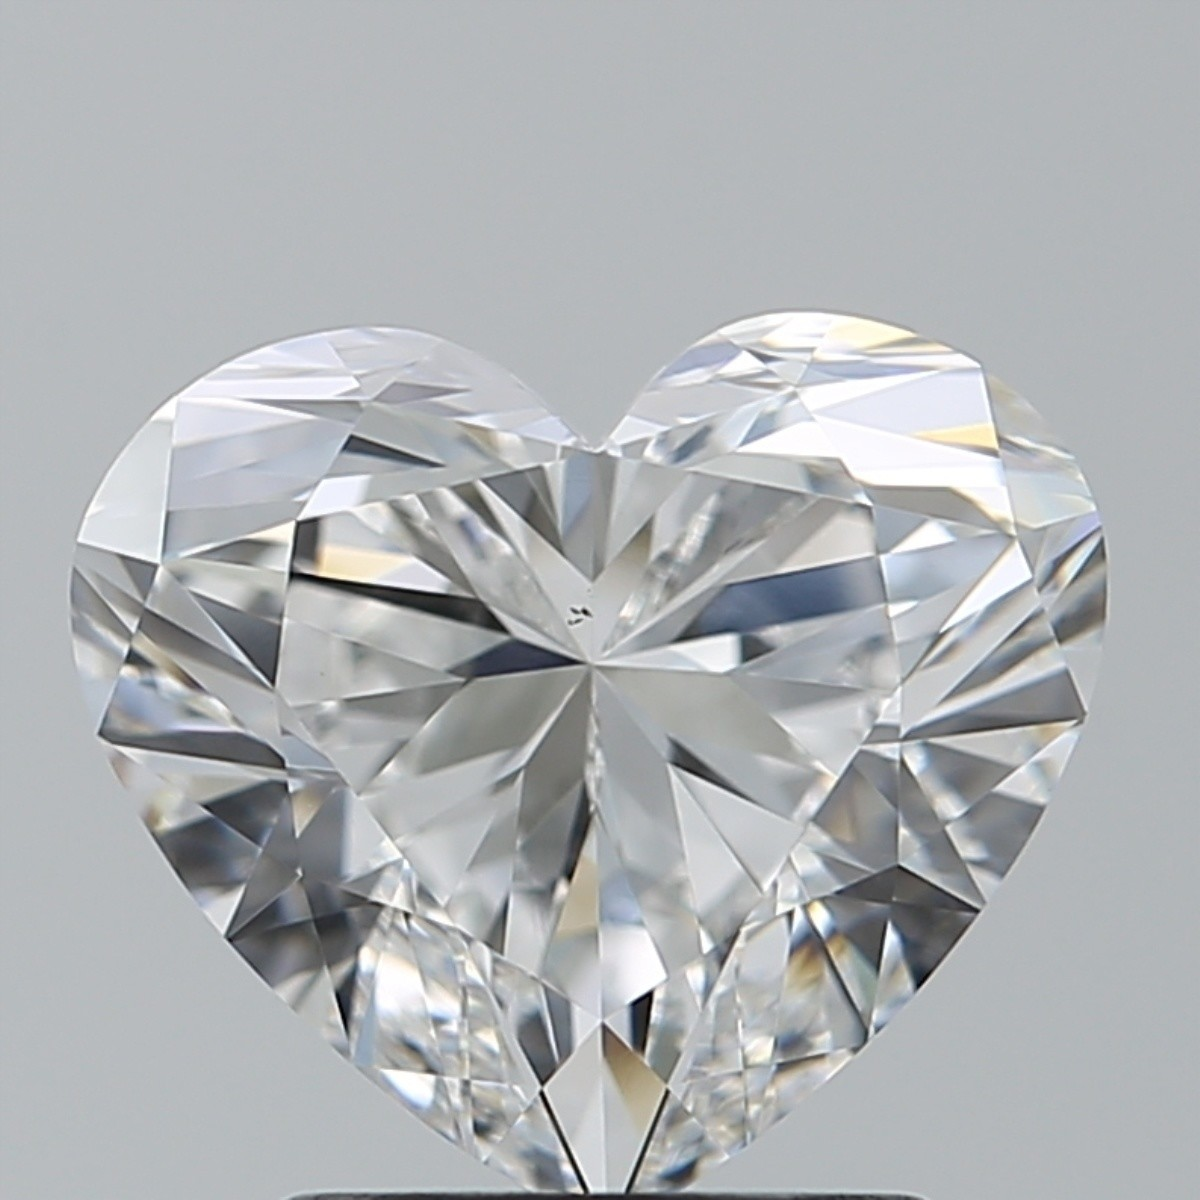 2.01 Carat Heart Diamond (E/VS2)